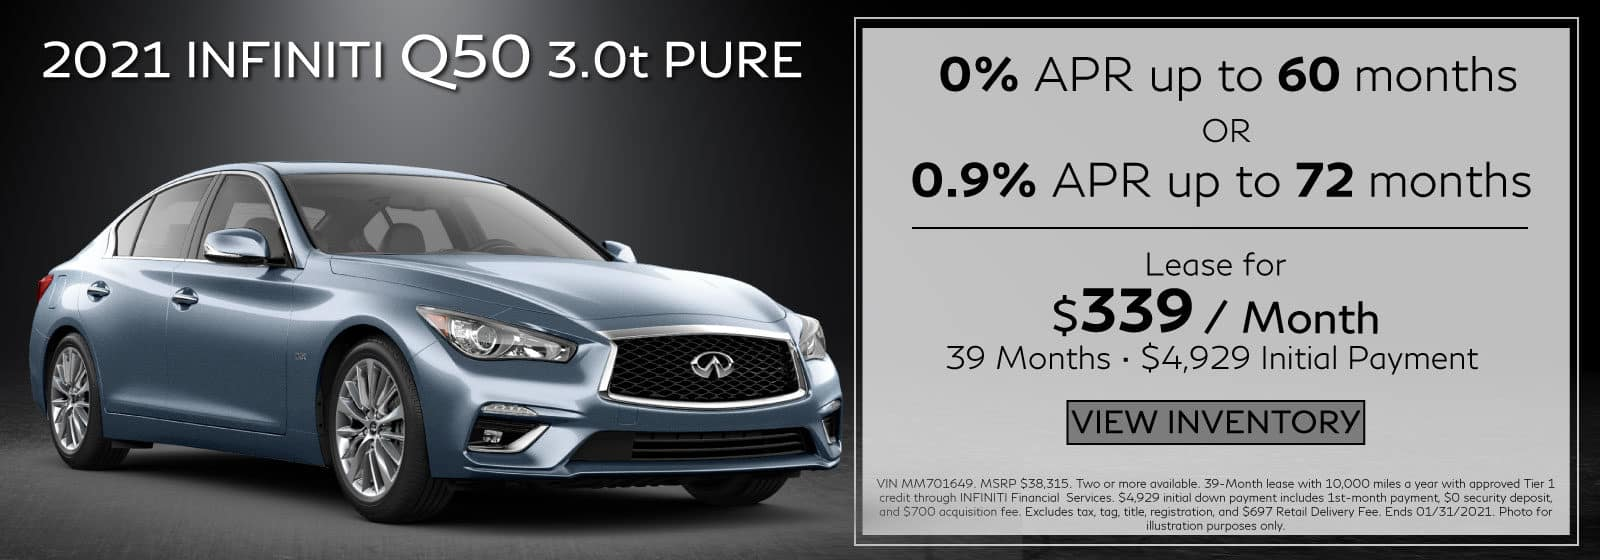 2021 Q50 3.0t PURE. $339/mo for 39 months. $4,929 Initial Payment